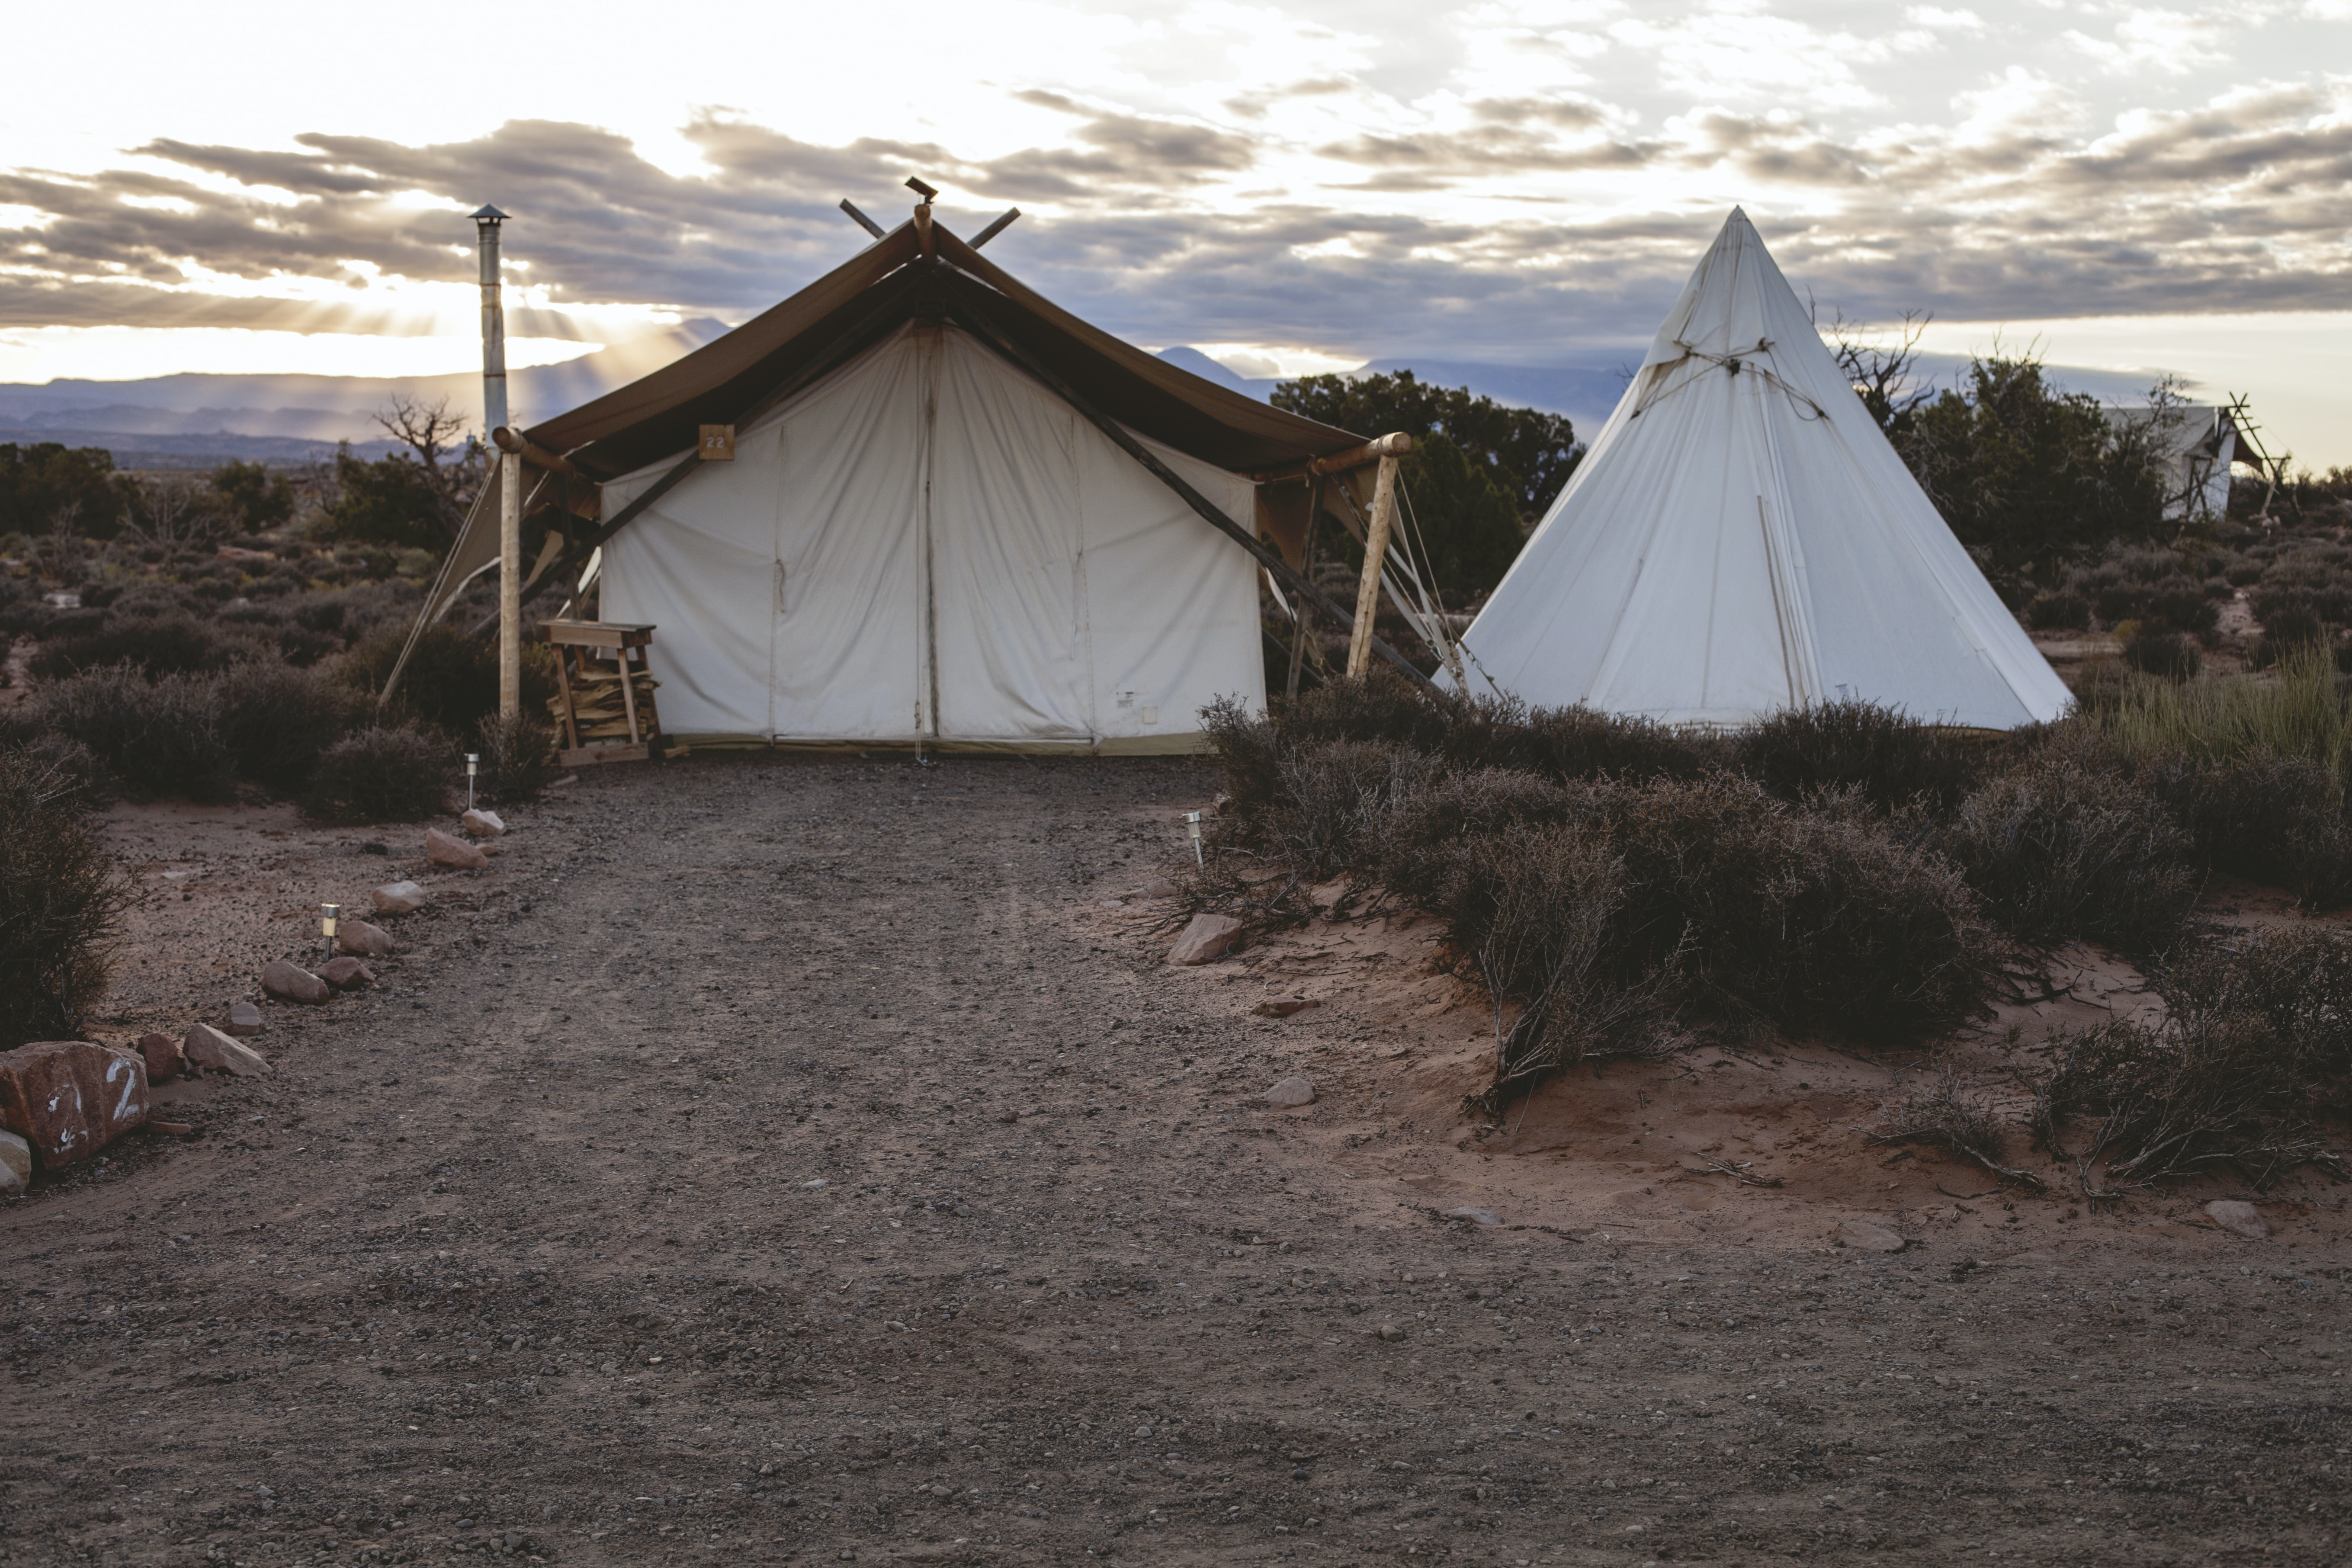 Rural campsite with a tent and teepee in a barren landscape